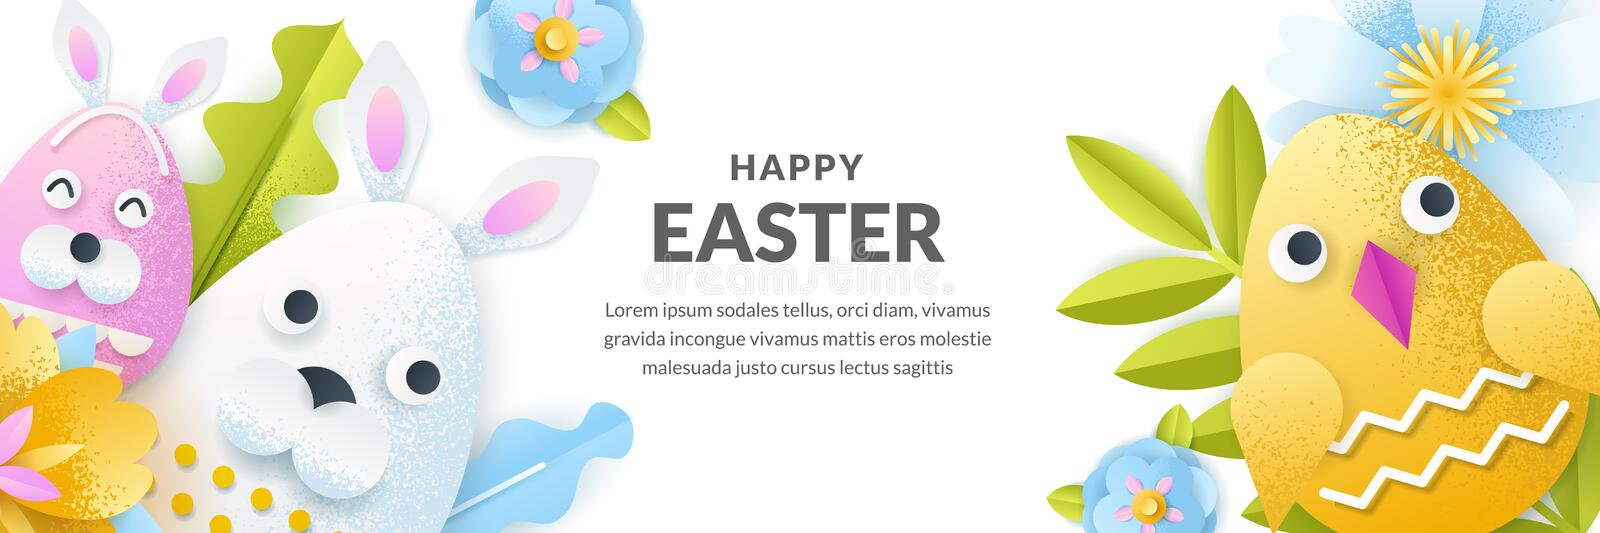 Easter vector banner template. Holiday horizontal background with 3d paper cut cute rabbit and chicken eggs vector illustration